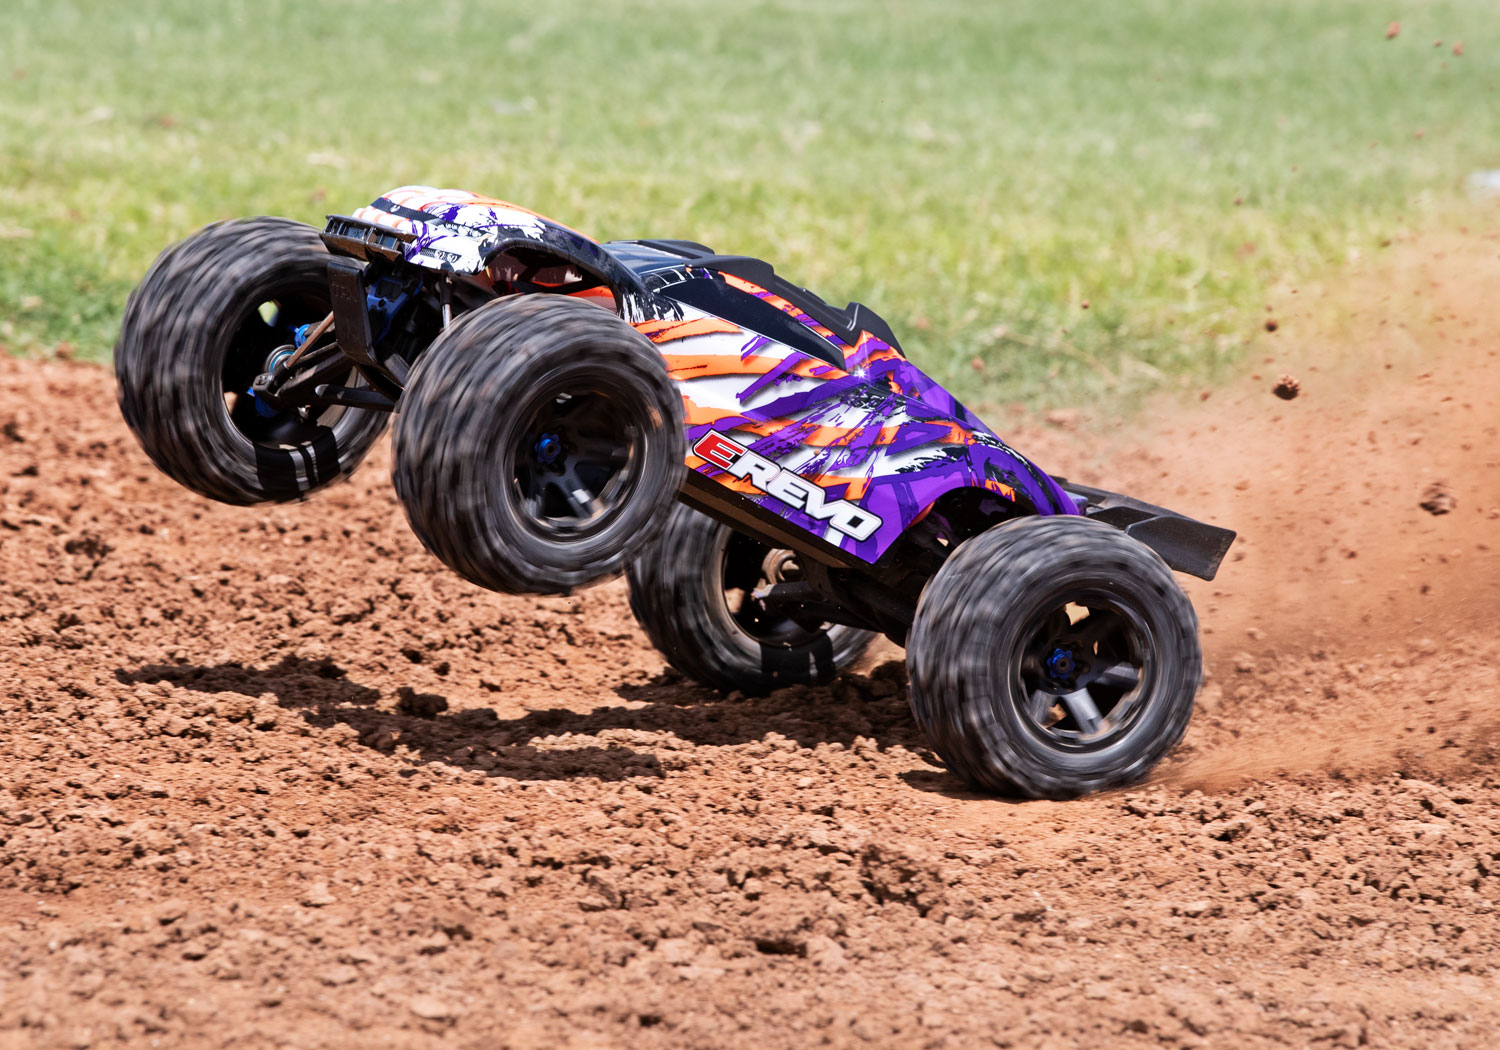 PACK TRAXXAS E-REVO - 4x4 - VIOLET - 1/10 BRUSHLESS - TSM - VERSION 4S/CHARGEUR